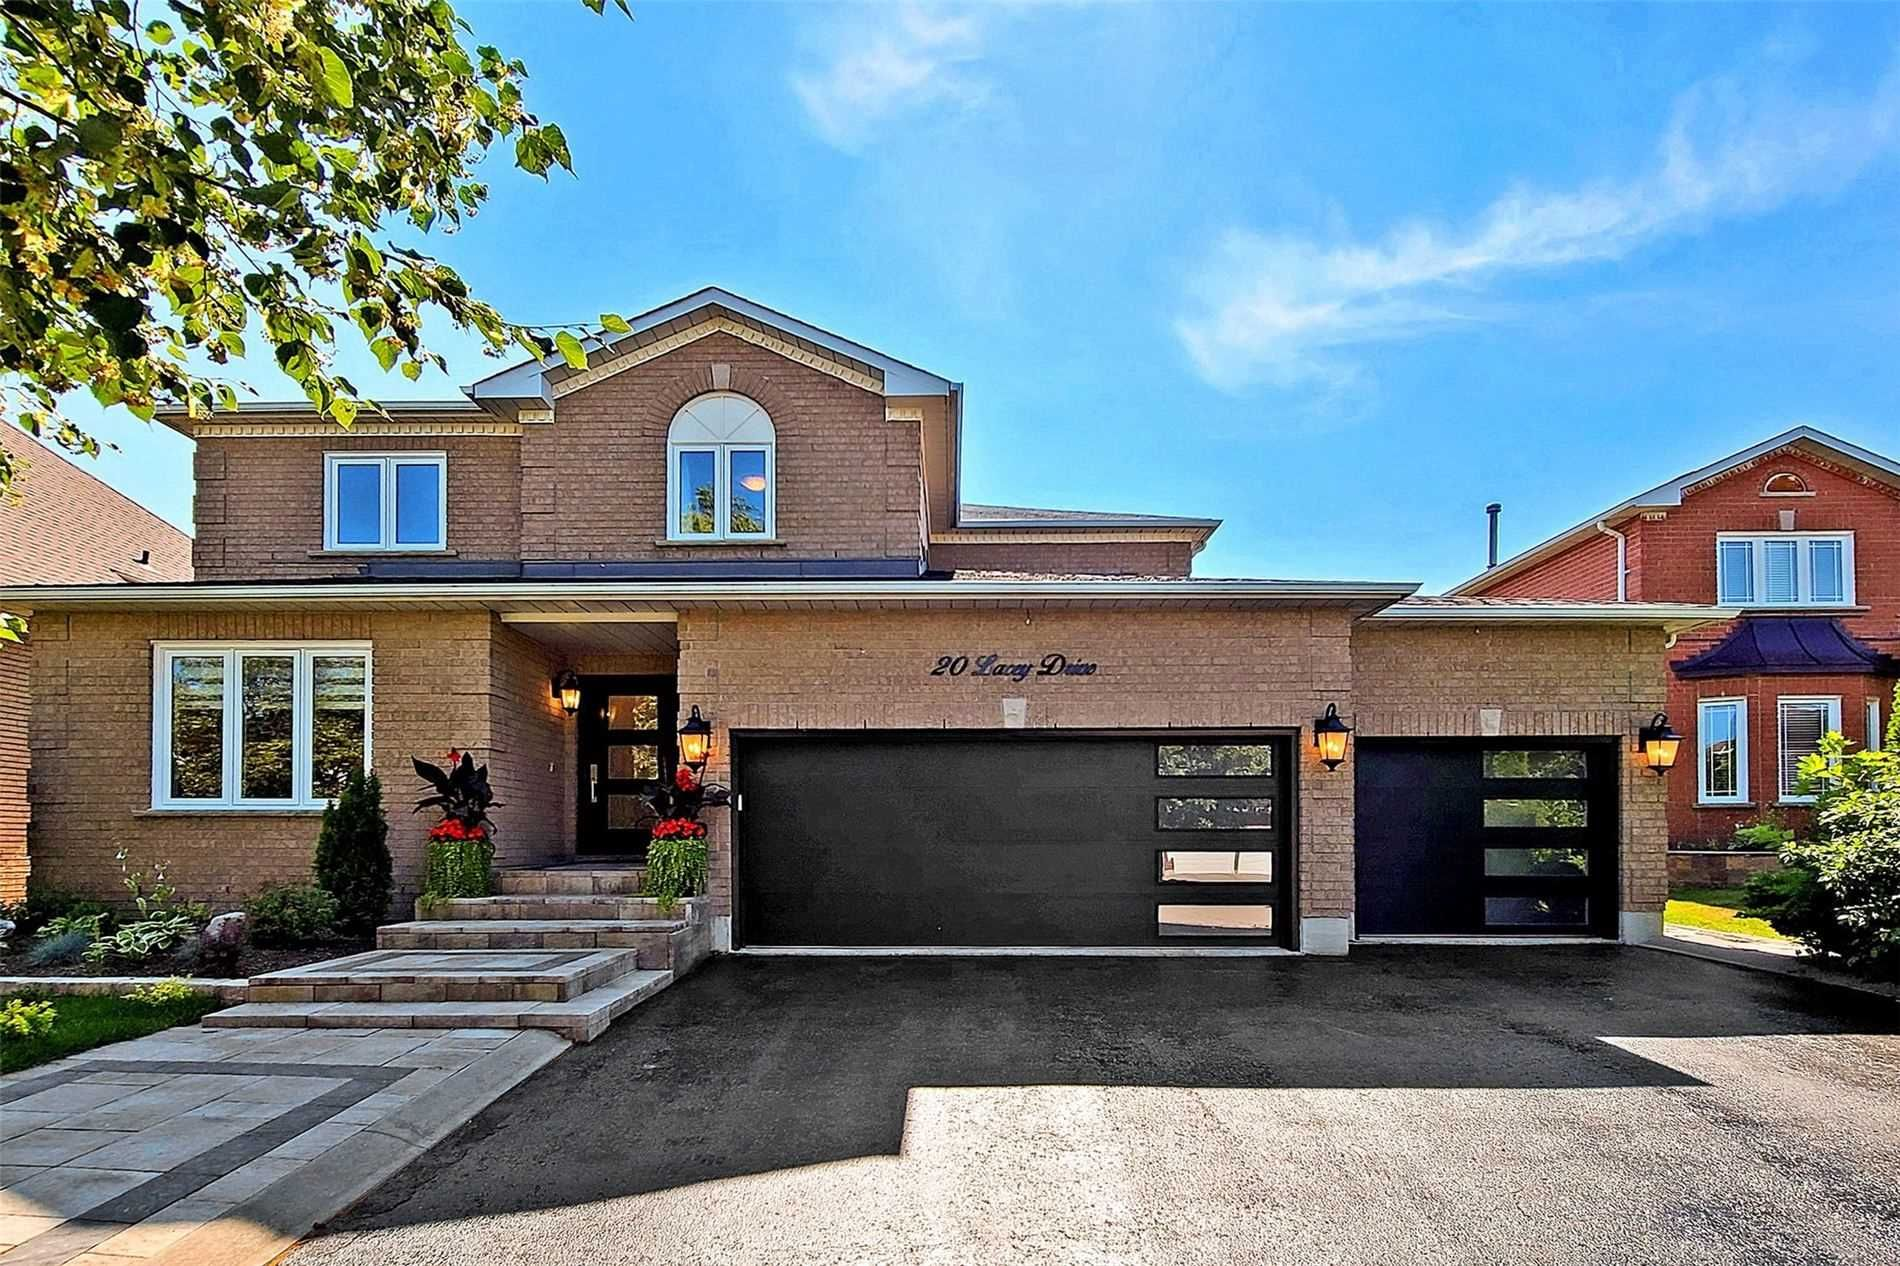 Main Photo: 20 Lacey Drive in Whitby: Pringle Creek House (2-Storey) for sale : MLS®# E5367996